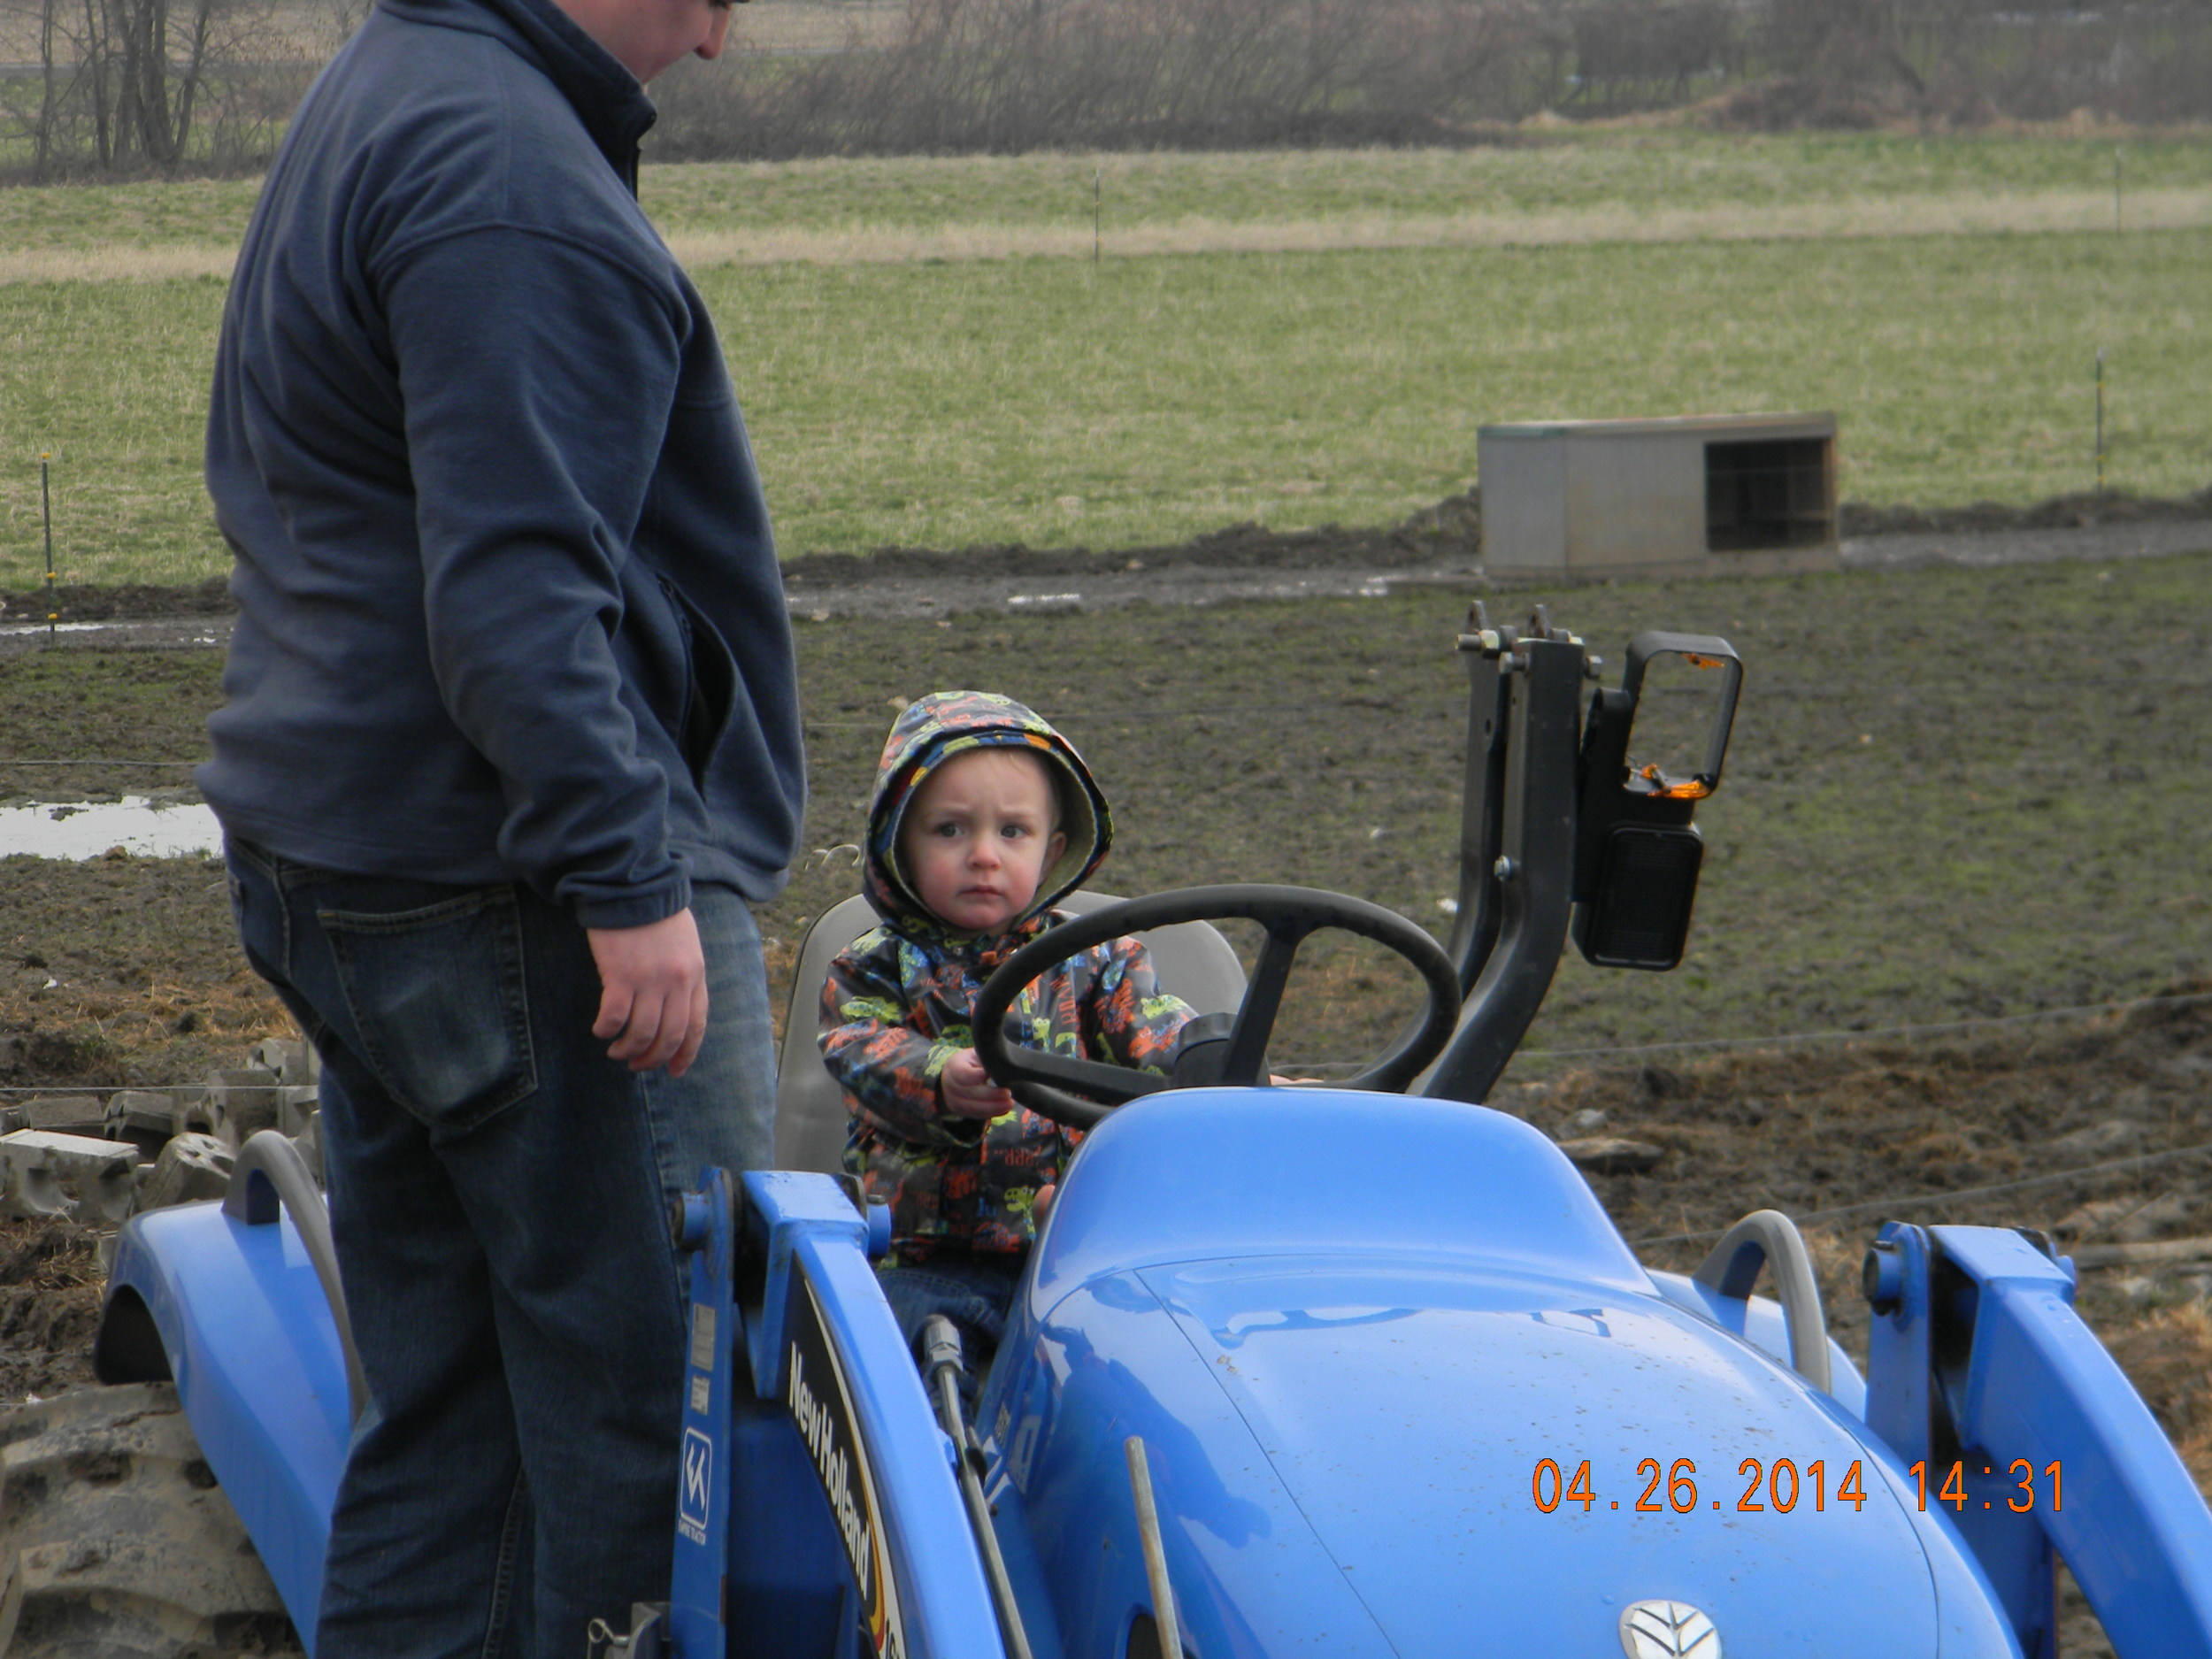 Toddler on a tractor!